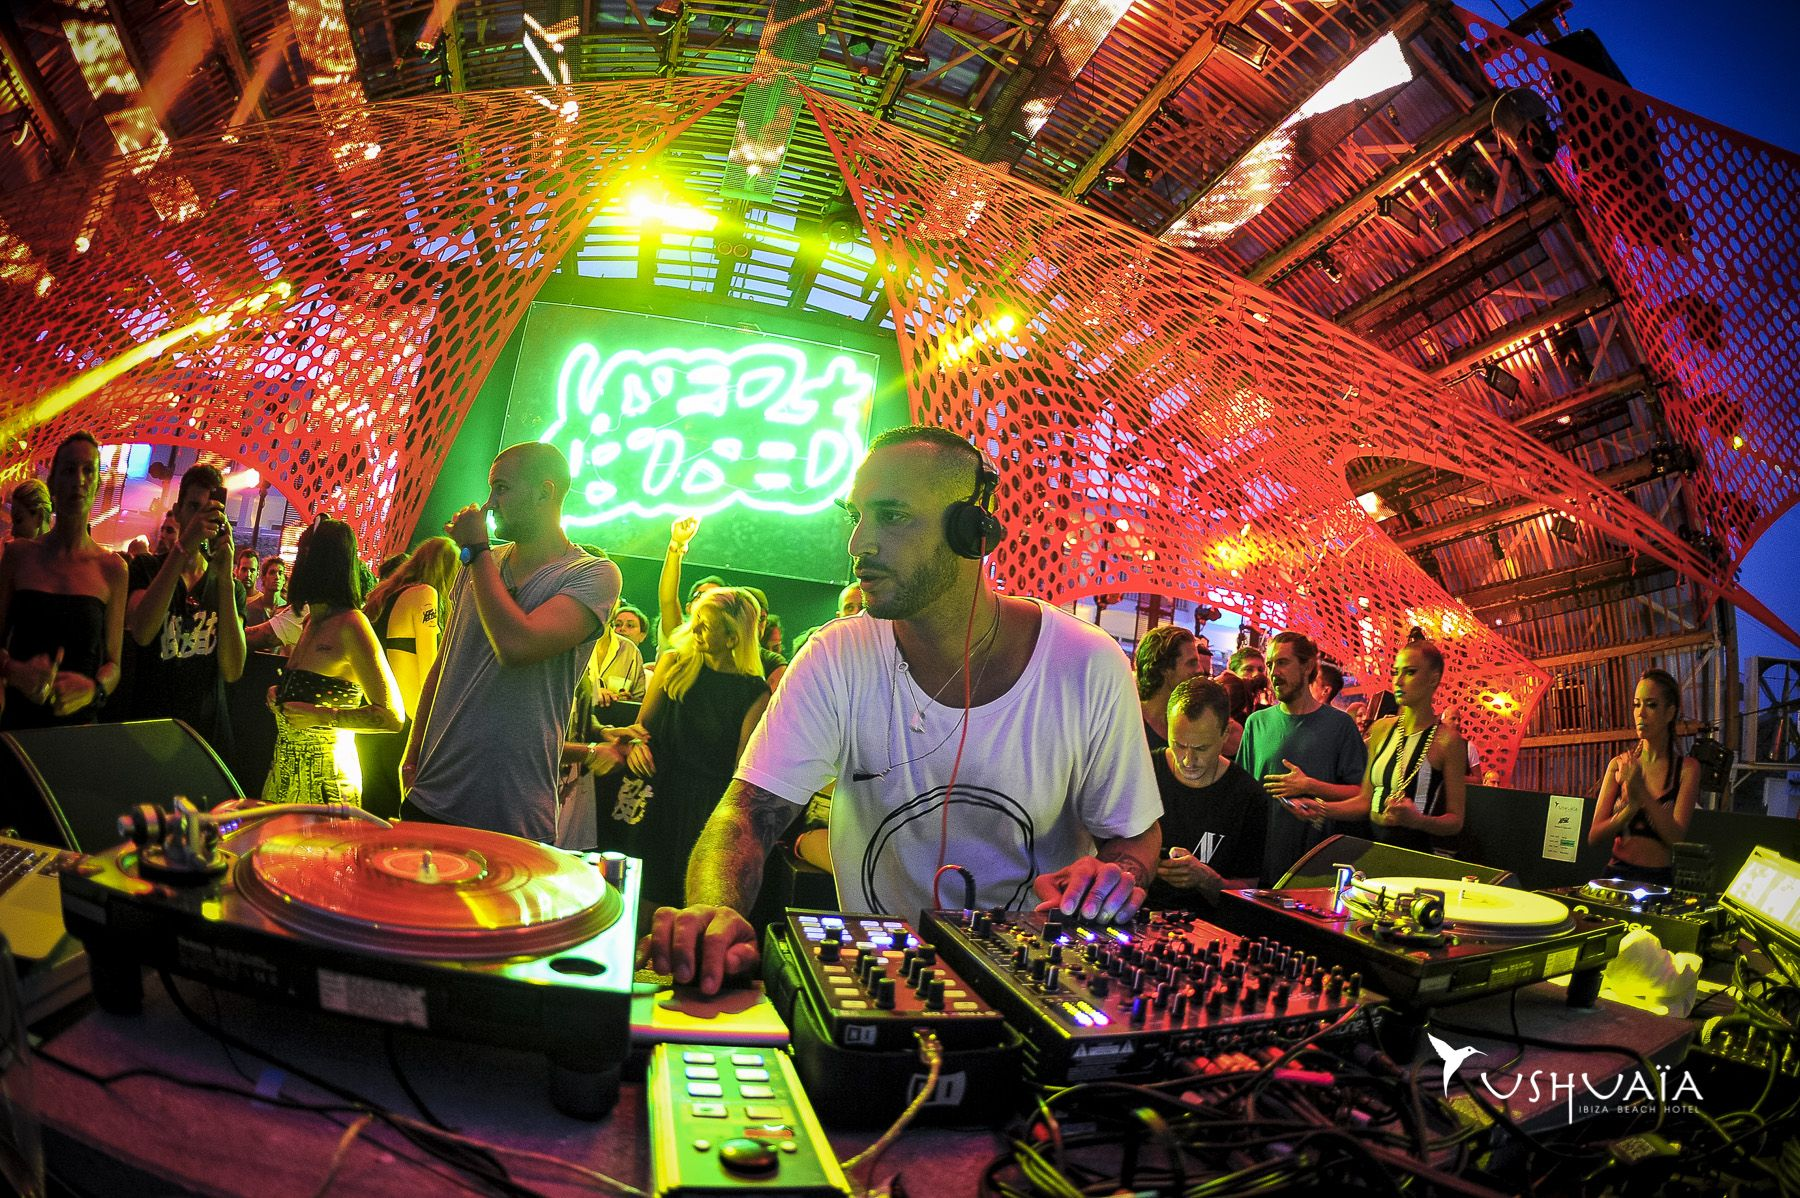 Thrilling colourful nightlife of Used Abused at Ushuaïa